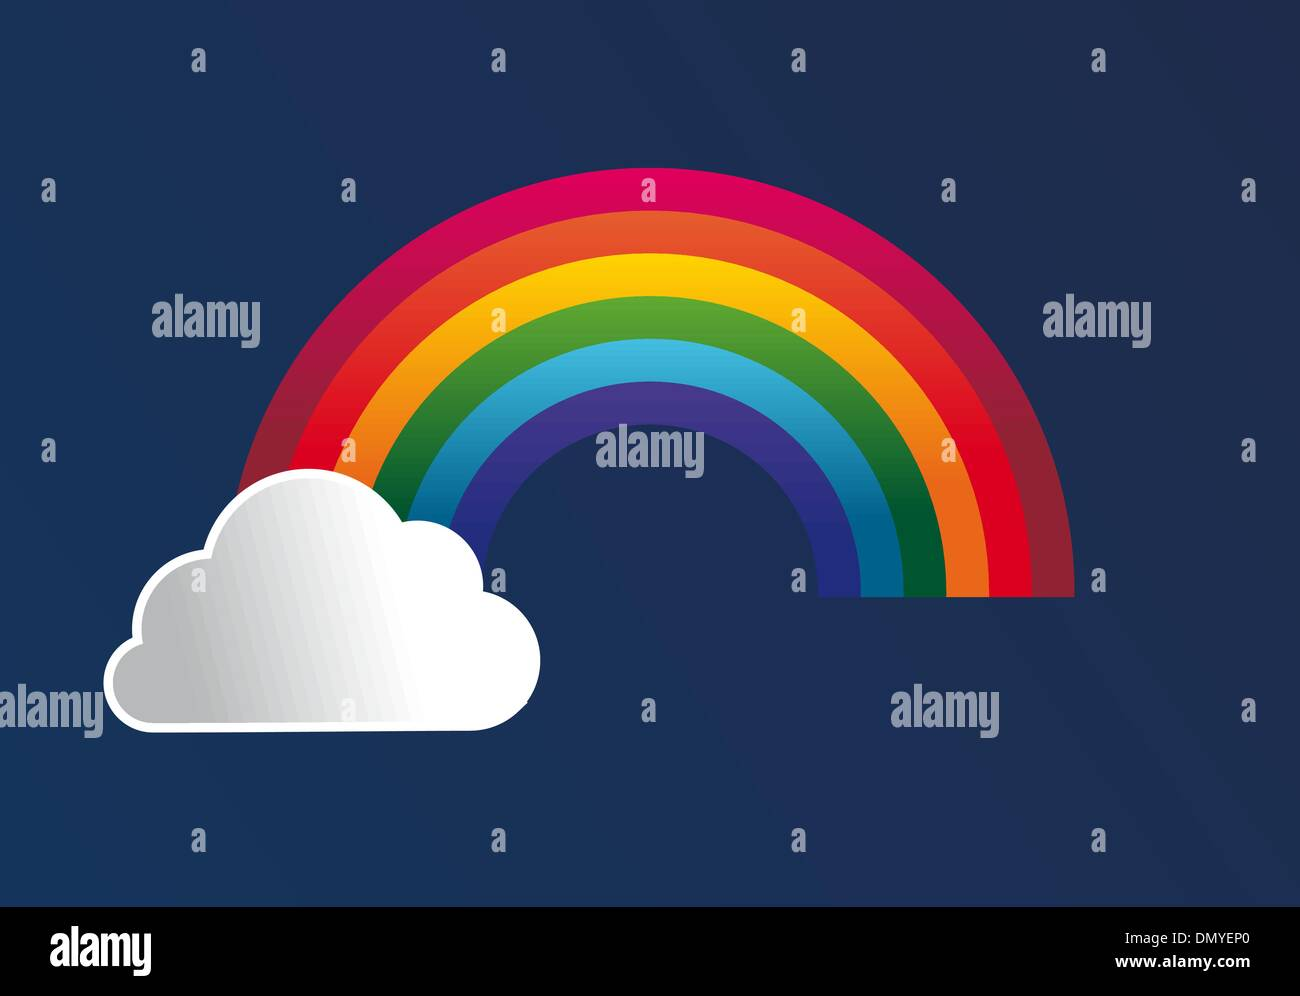 Rainbow with clouds cartoon background Stock Vector